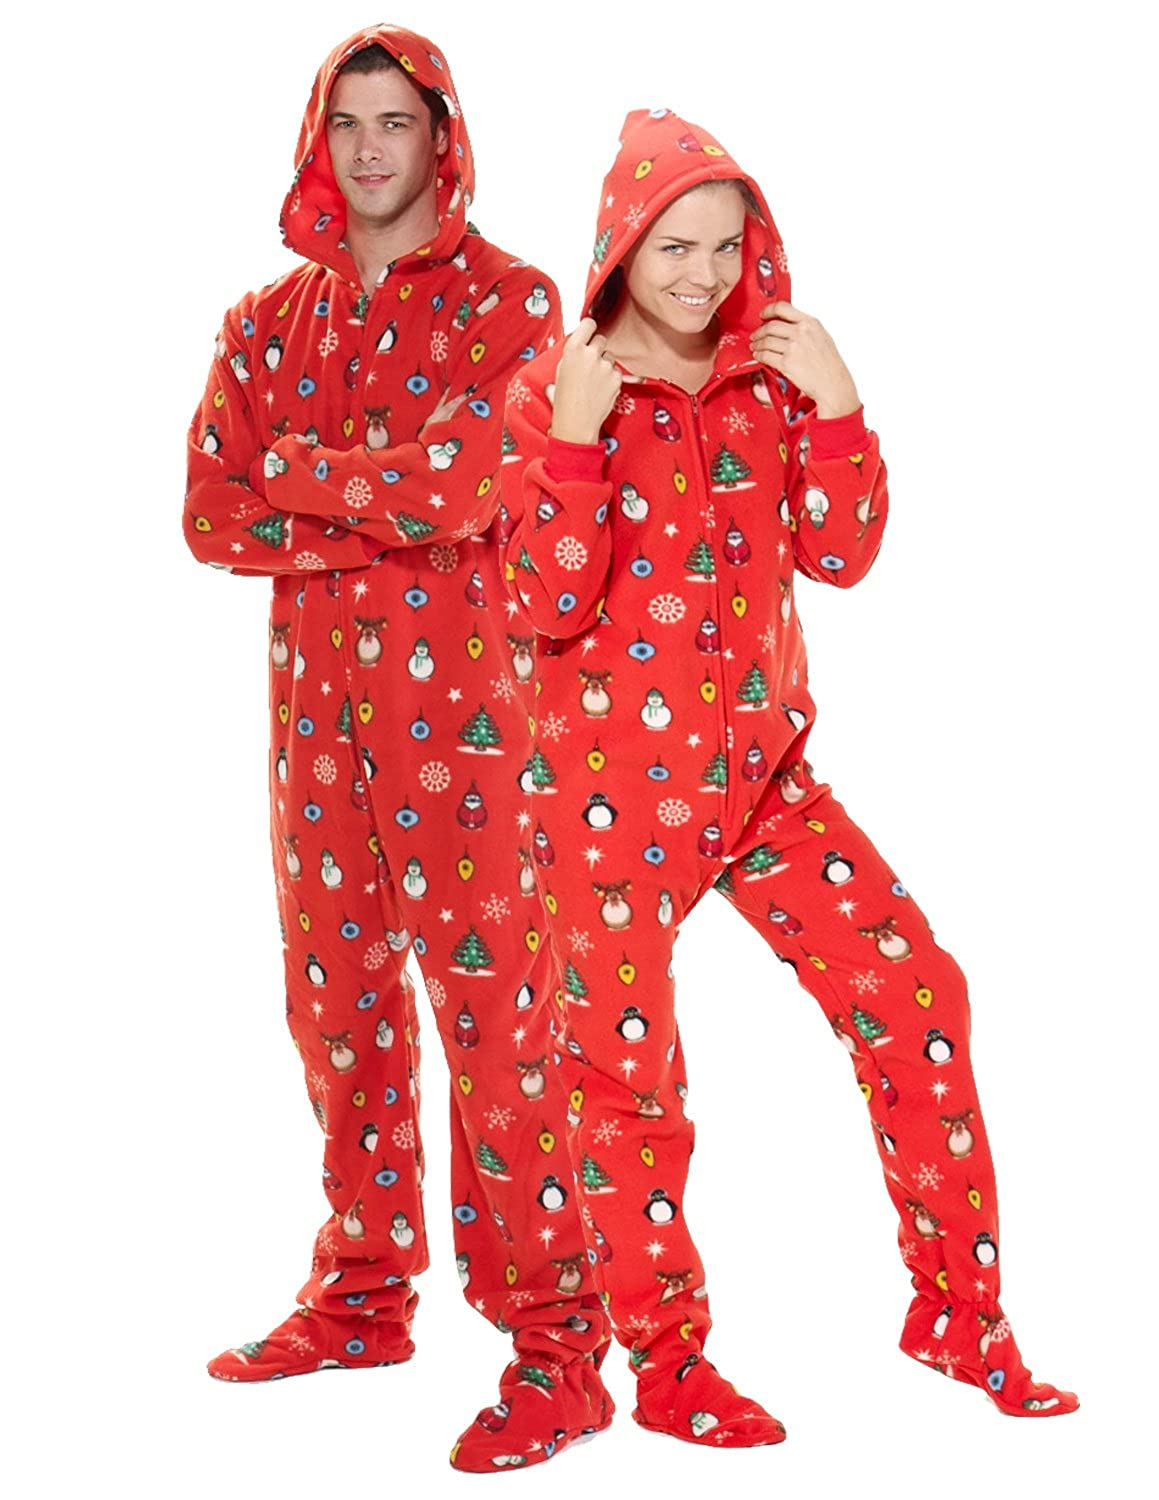 Christmas Pajama Onesies.Footed Pajamas Holly Jolly Christmas Adult Hoodie Onesie